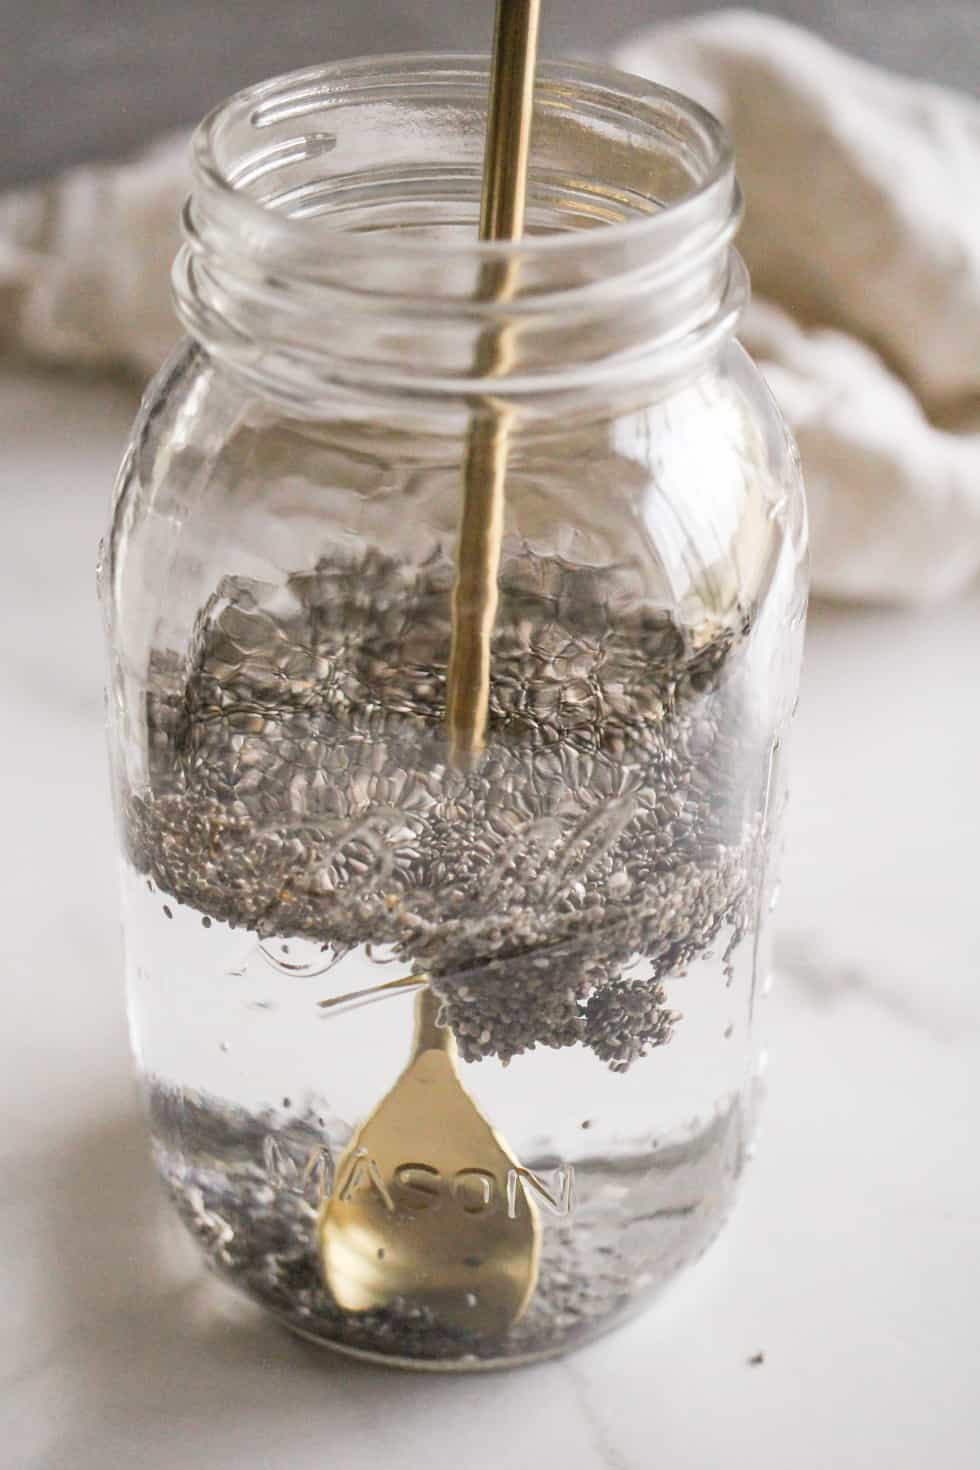 Chia seeds in a jar of water being stirred with a gold spoon.